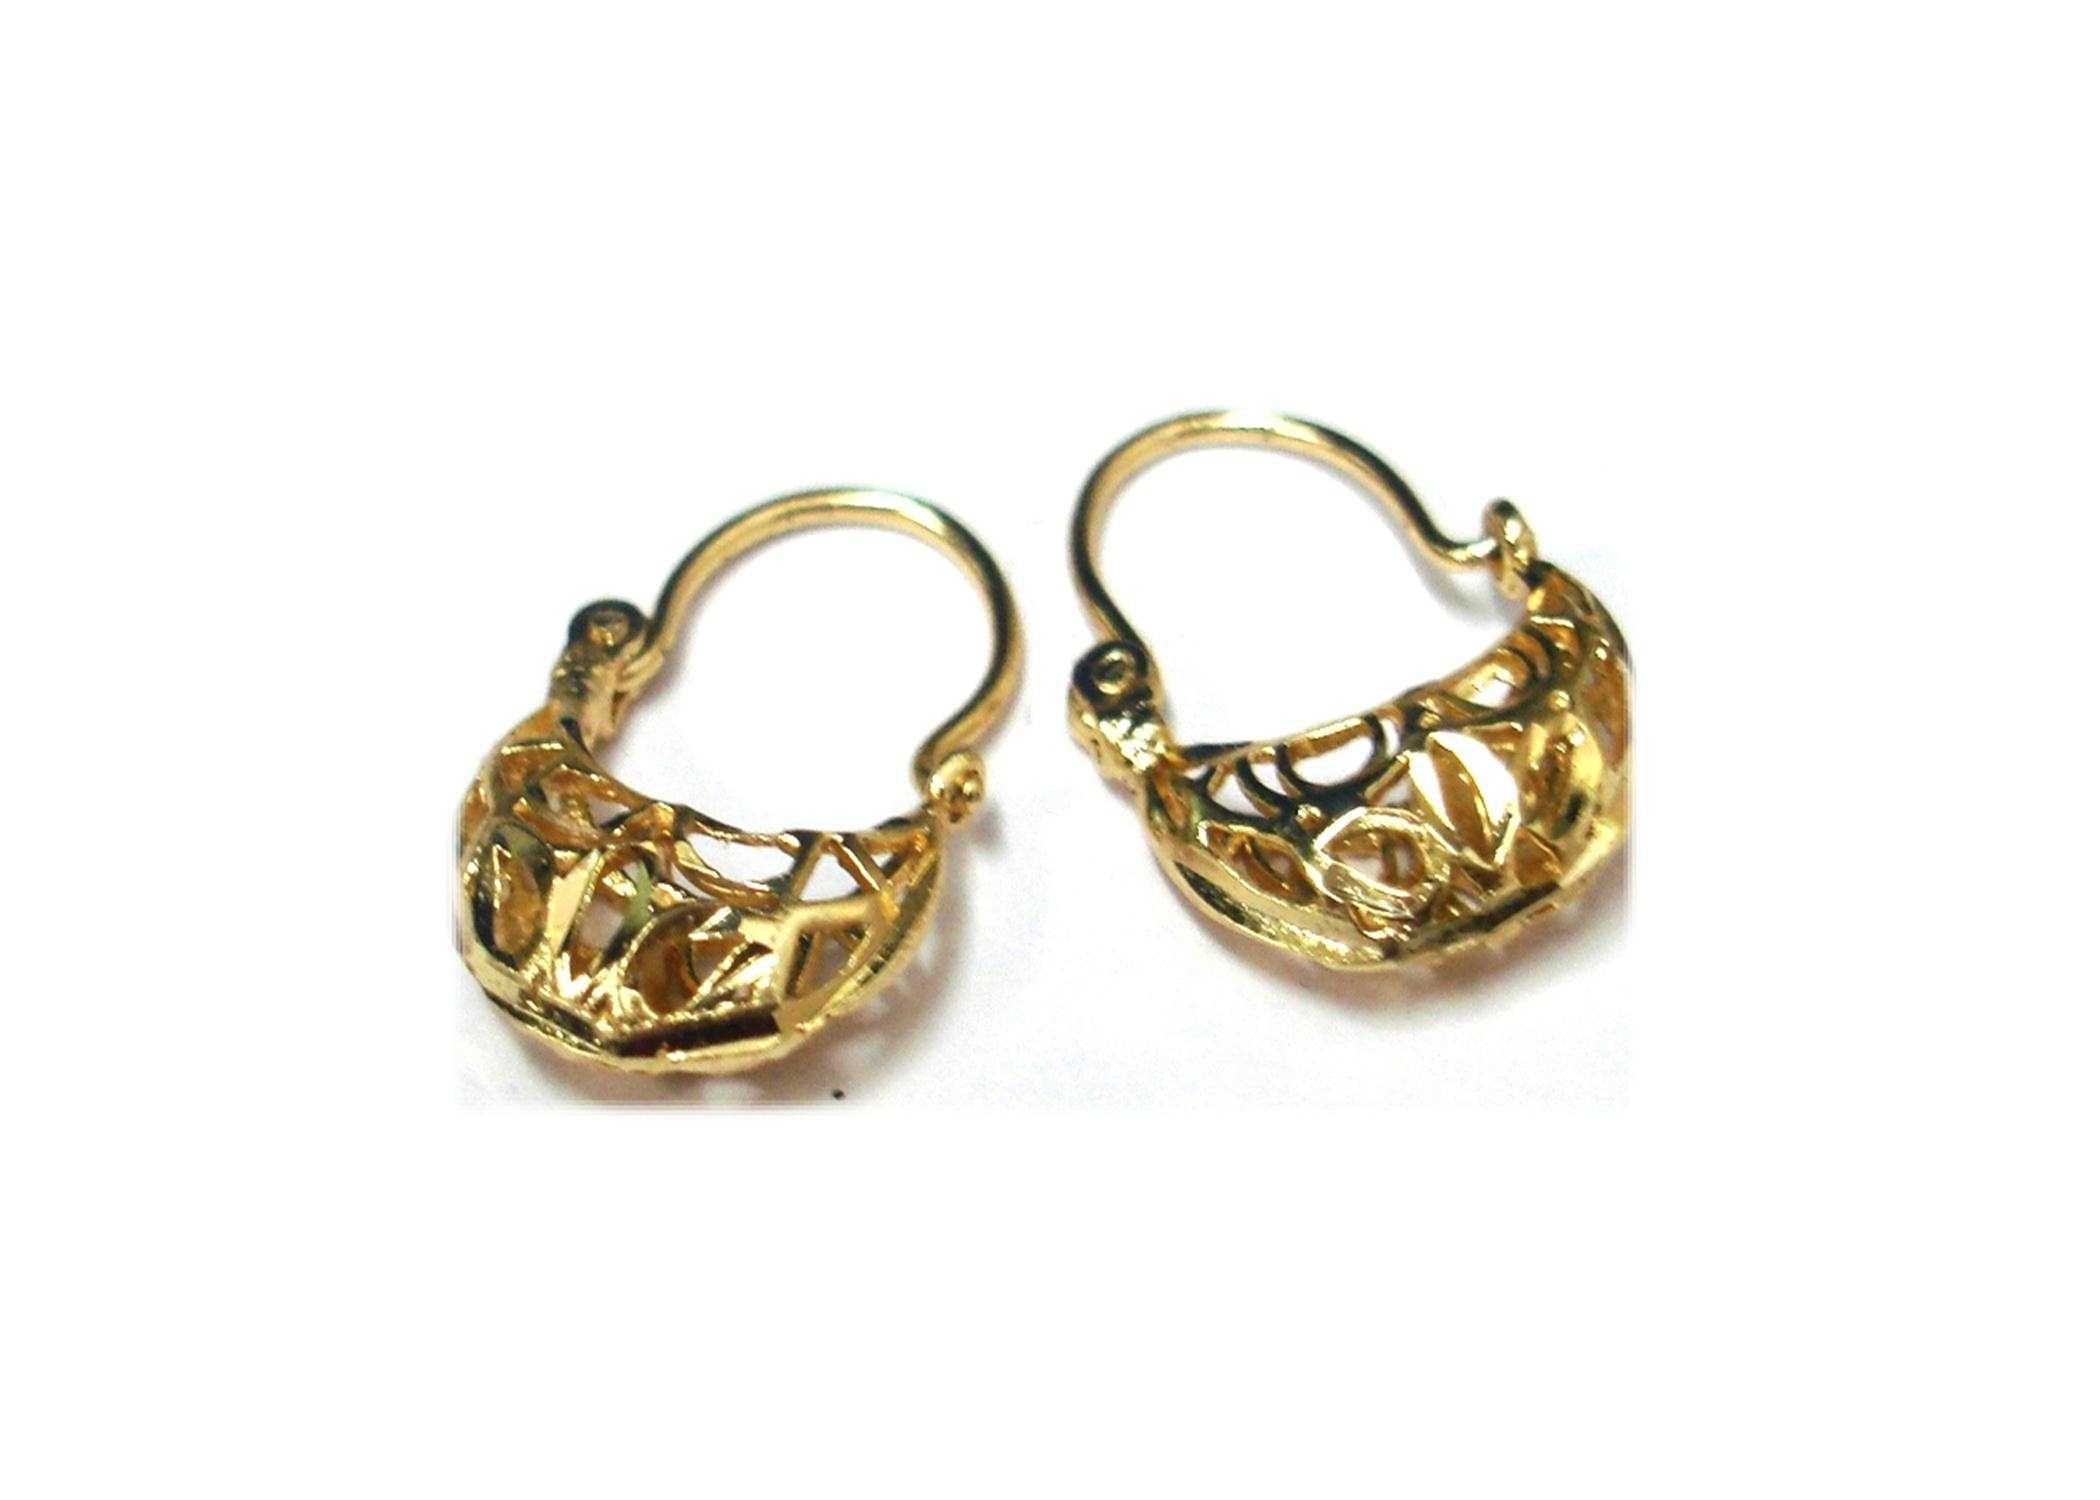 Gold Plated Basket Hoop Earrings